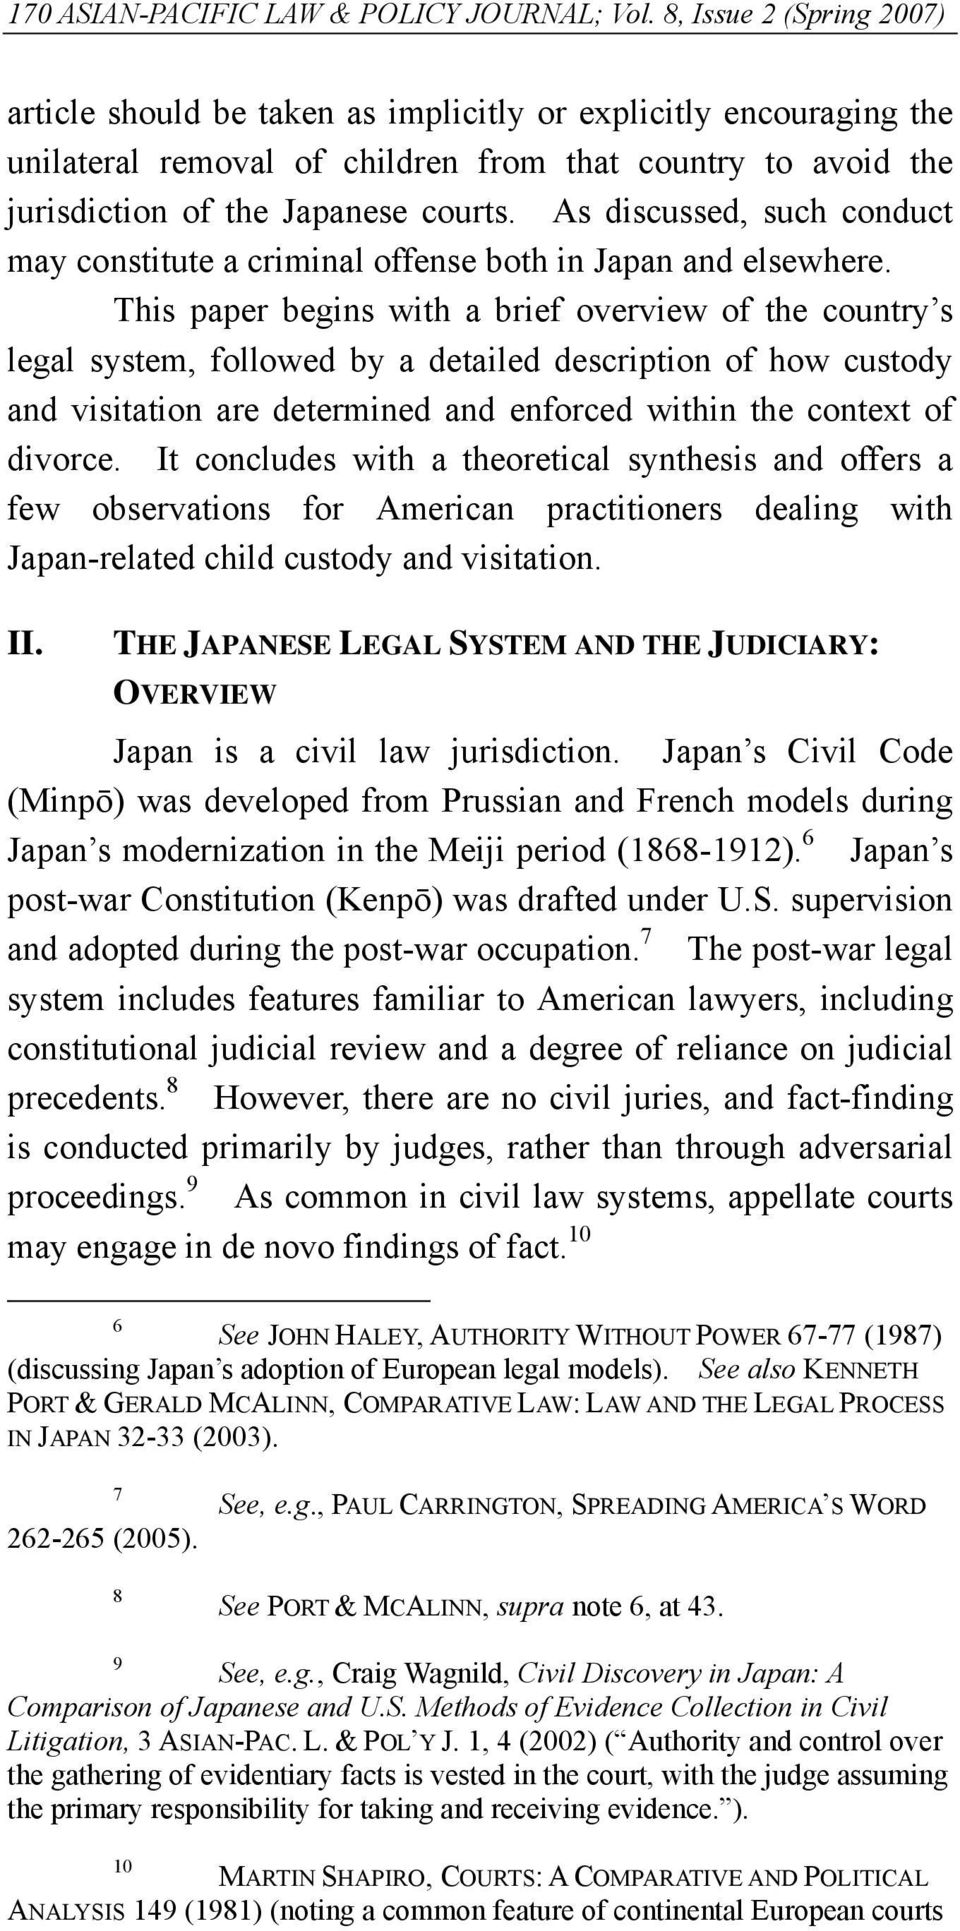 As discussed, such conduct may constitute a criminal offense both in Japan and elsewhere.